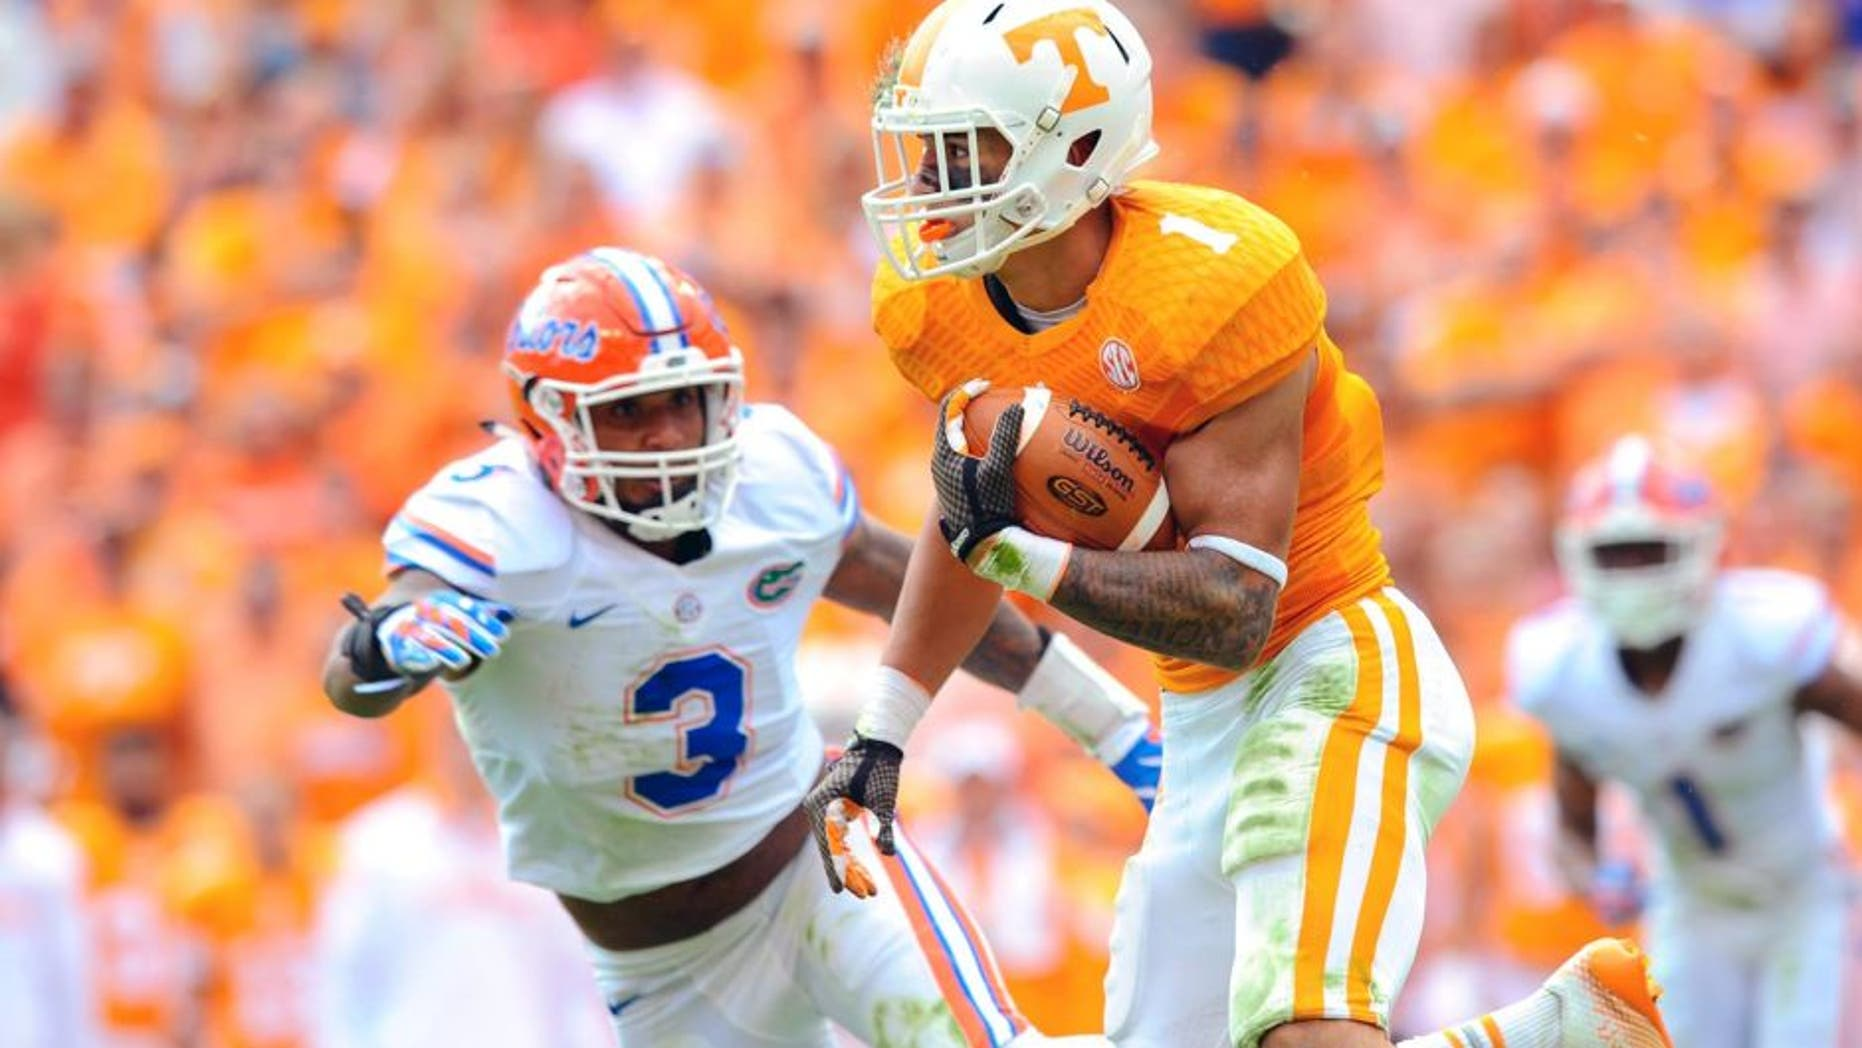 Oct 4, 2014; Knoxville, TN, USA; Tennessee Volunteers running back Jalen Hurd (1) runs the ball against the Florida Gators during the second quarter at Neyland Stadium. Mandatory Credit: Randy Sartin-USA TODAY Sports